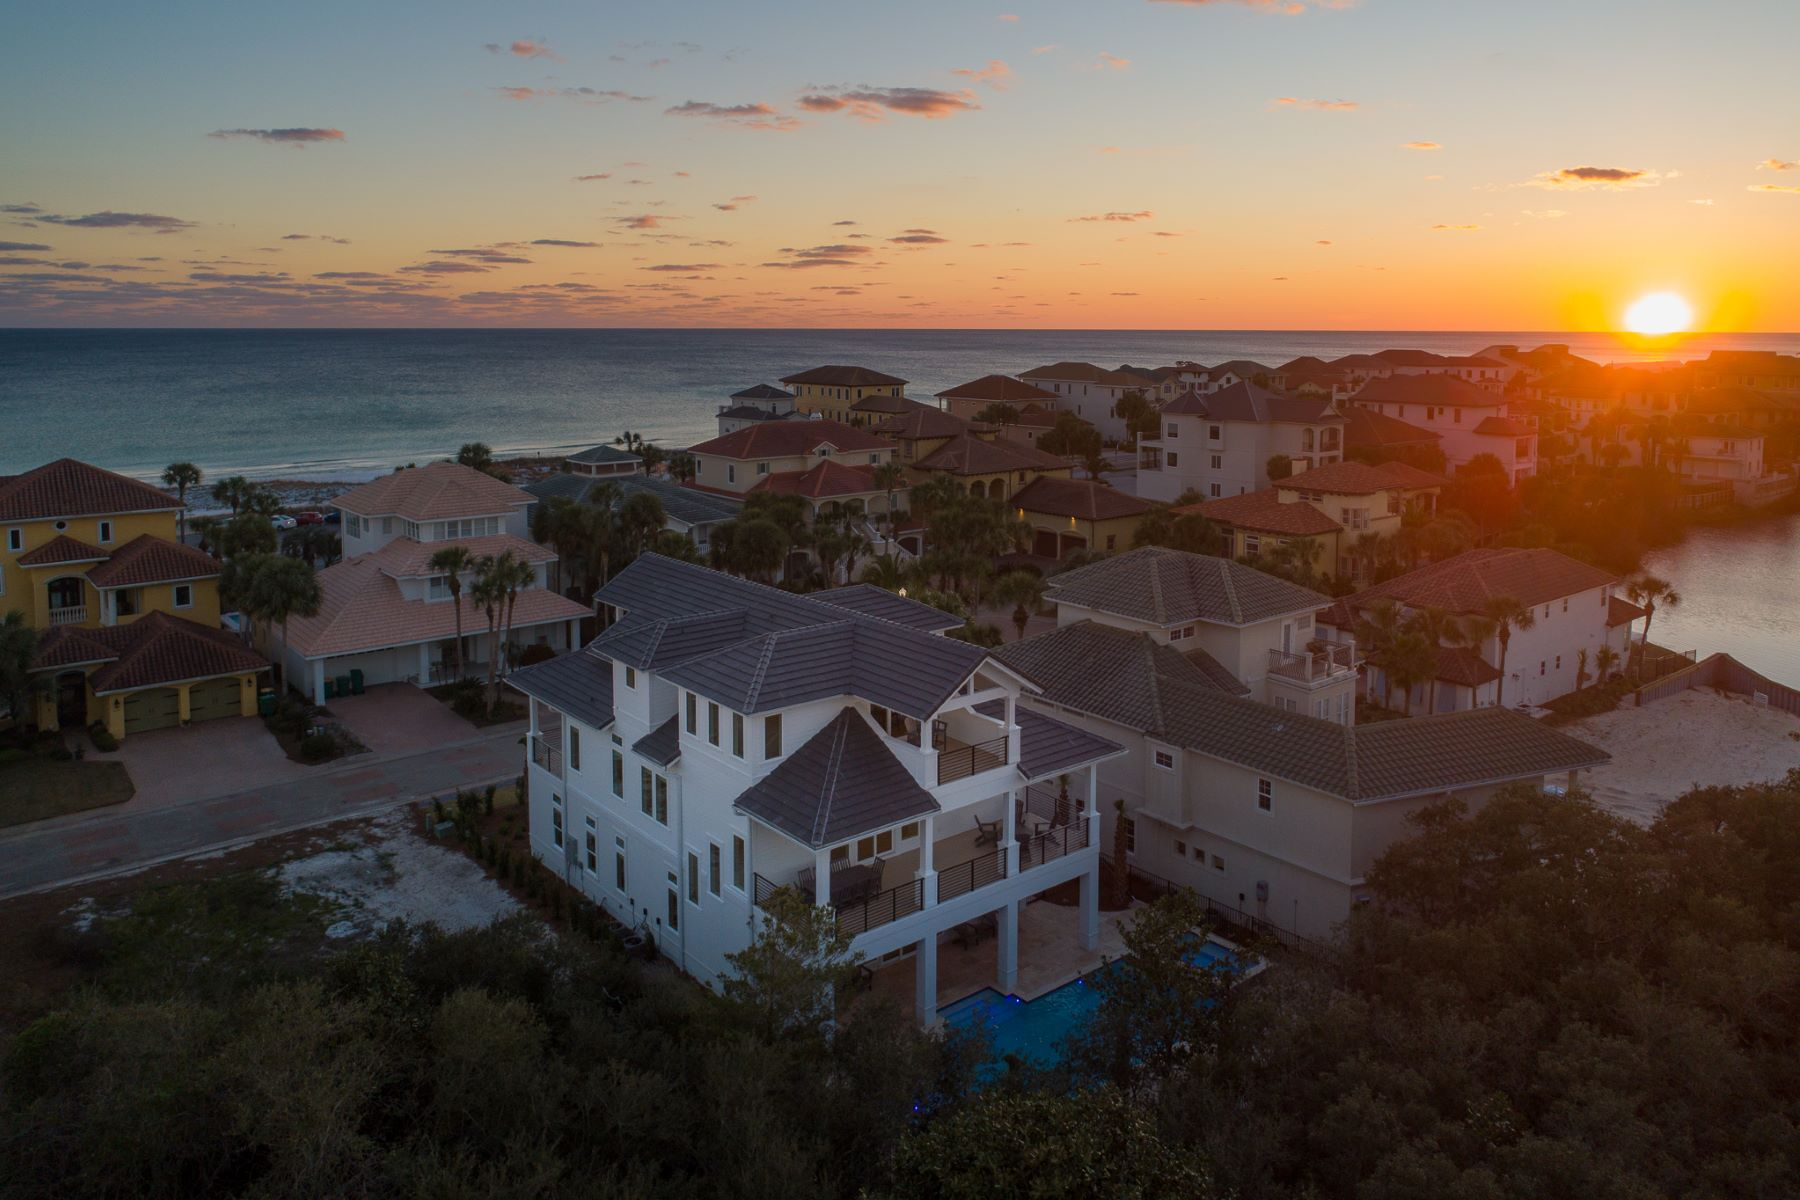 Single Family Homes for Active at Newly Built Home in Gated Community with Pool & Gulf Views 4645 Destiny Way Destin, Florida 32541 United States